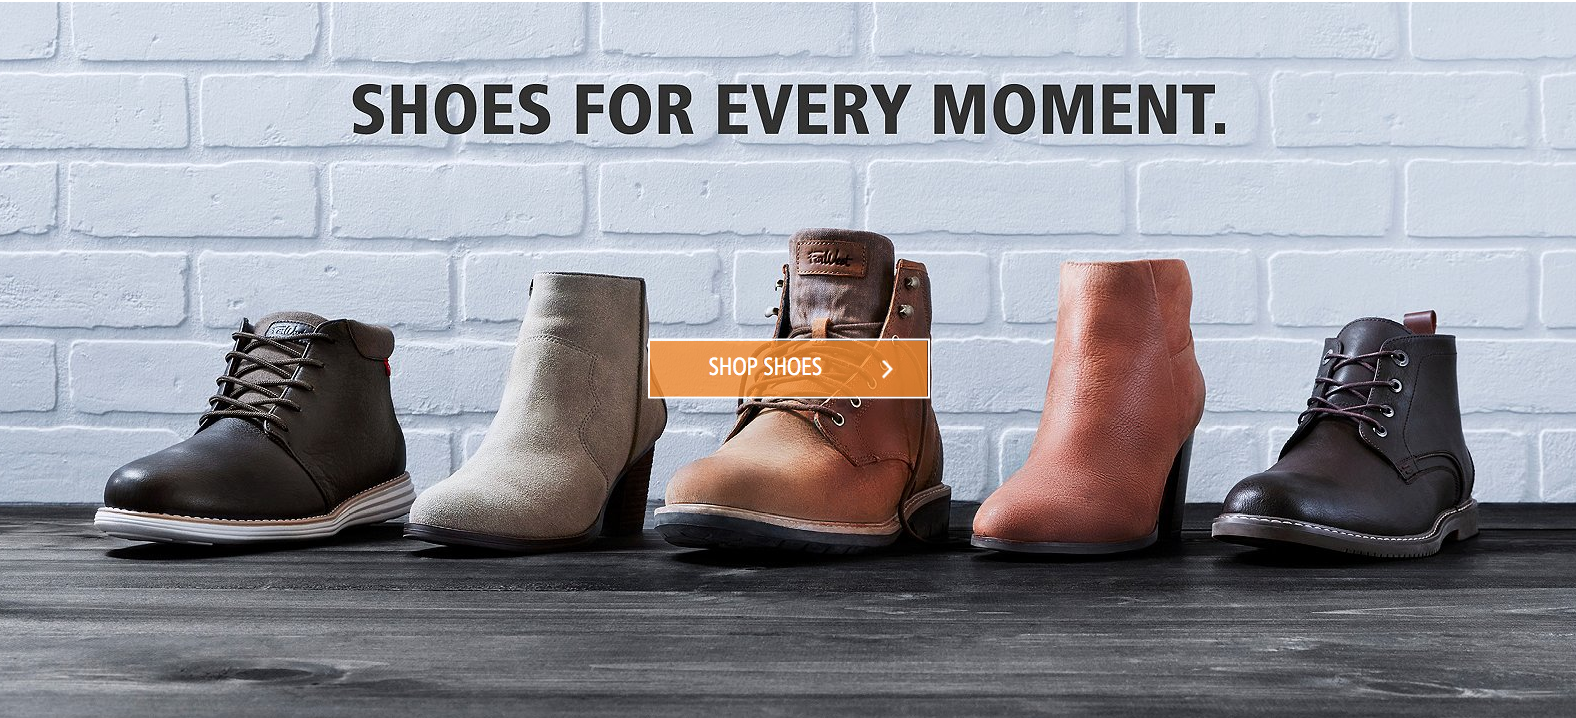 5424275eaba Mark's Canada Sale: BOGO 50% Off ALL Shoes & Boots + 25% Off ALL ...